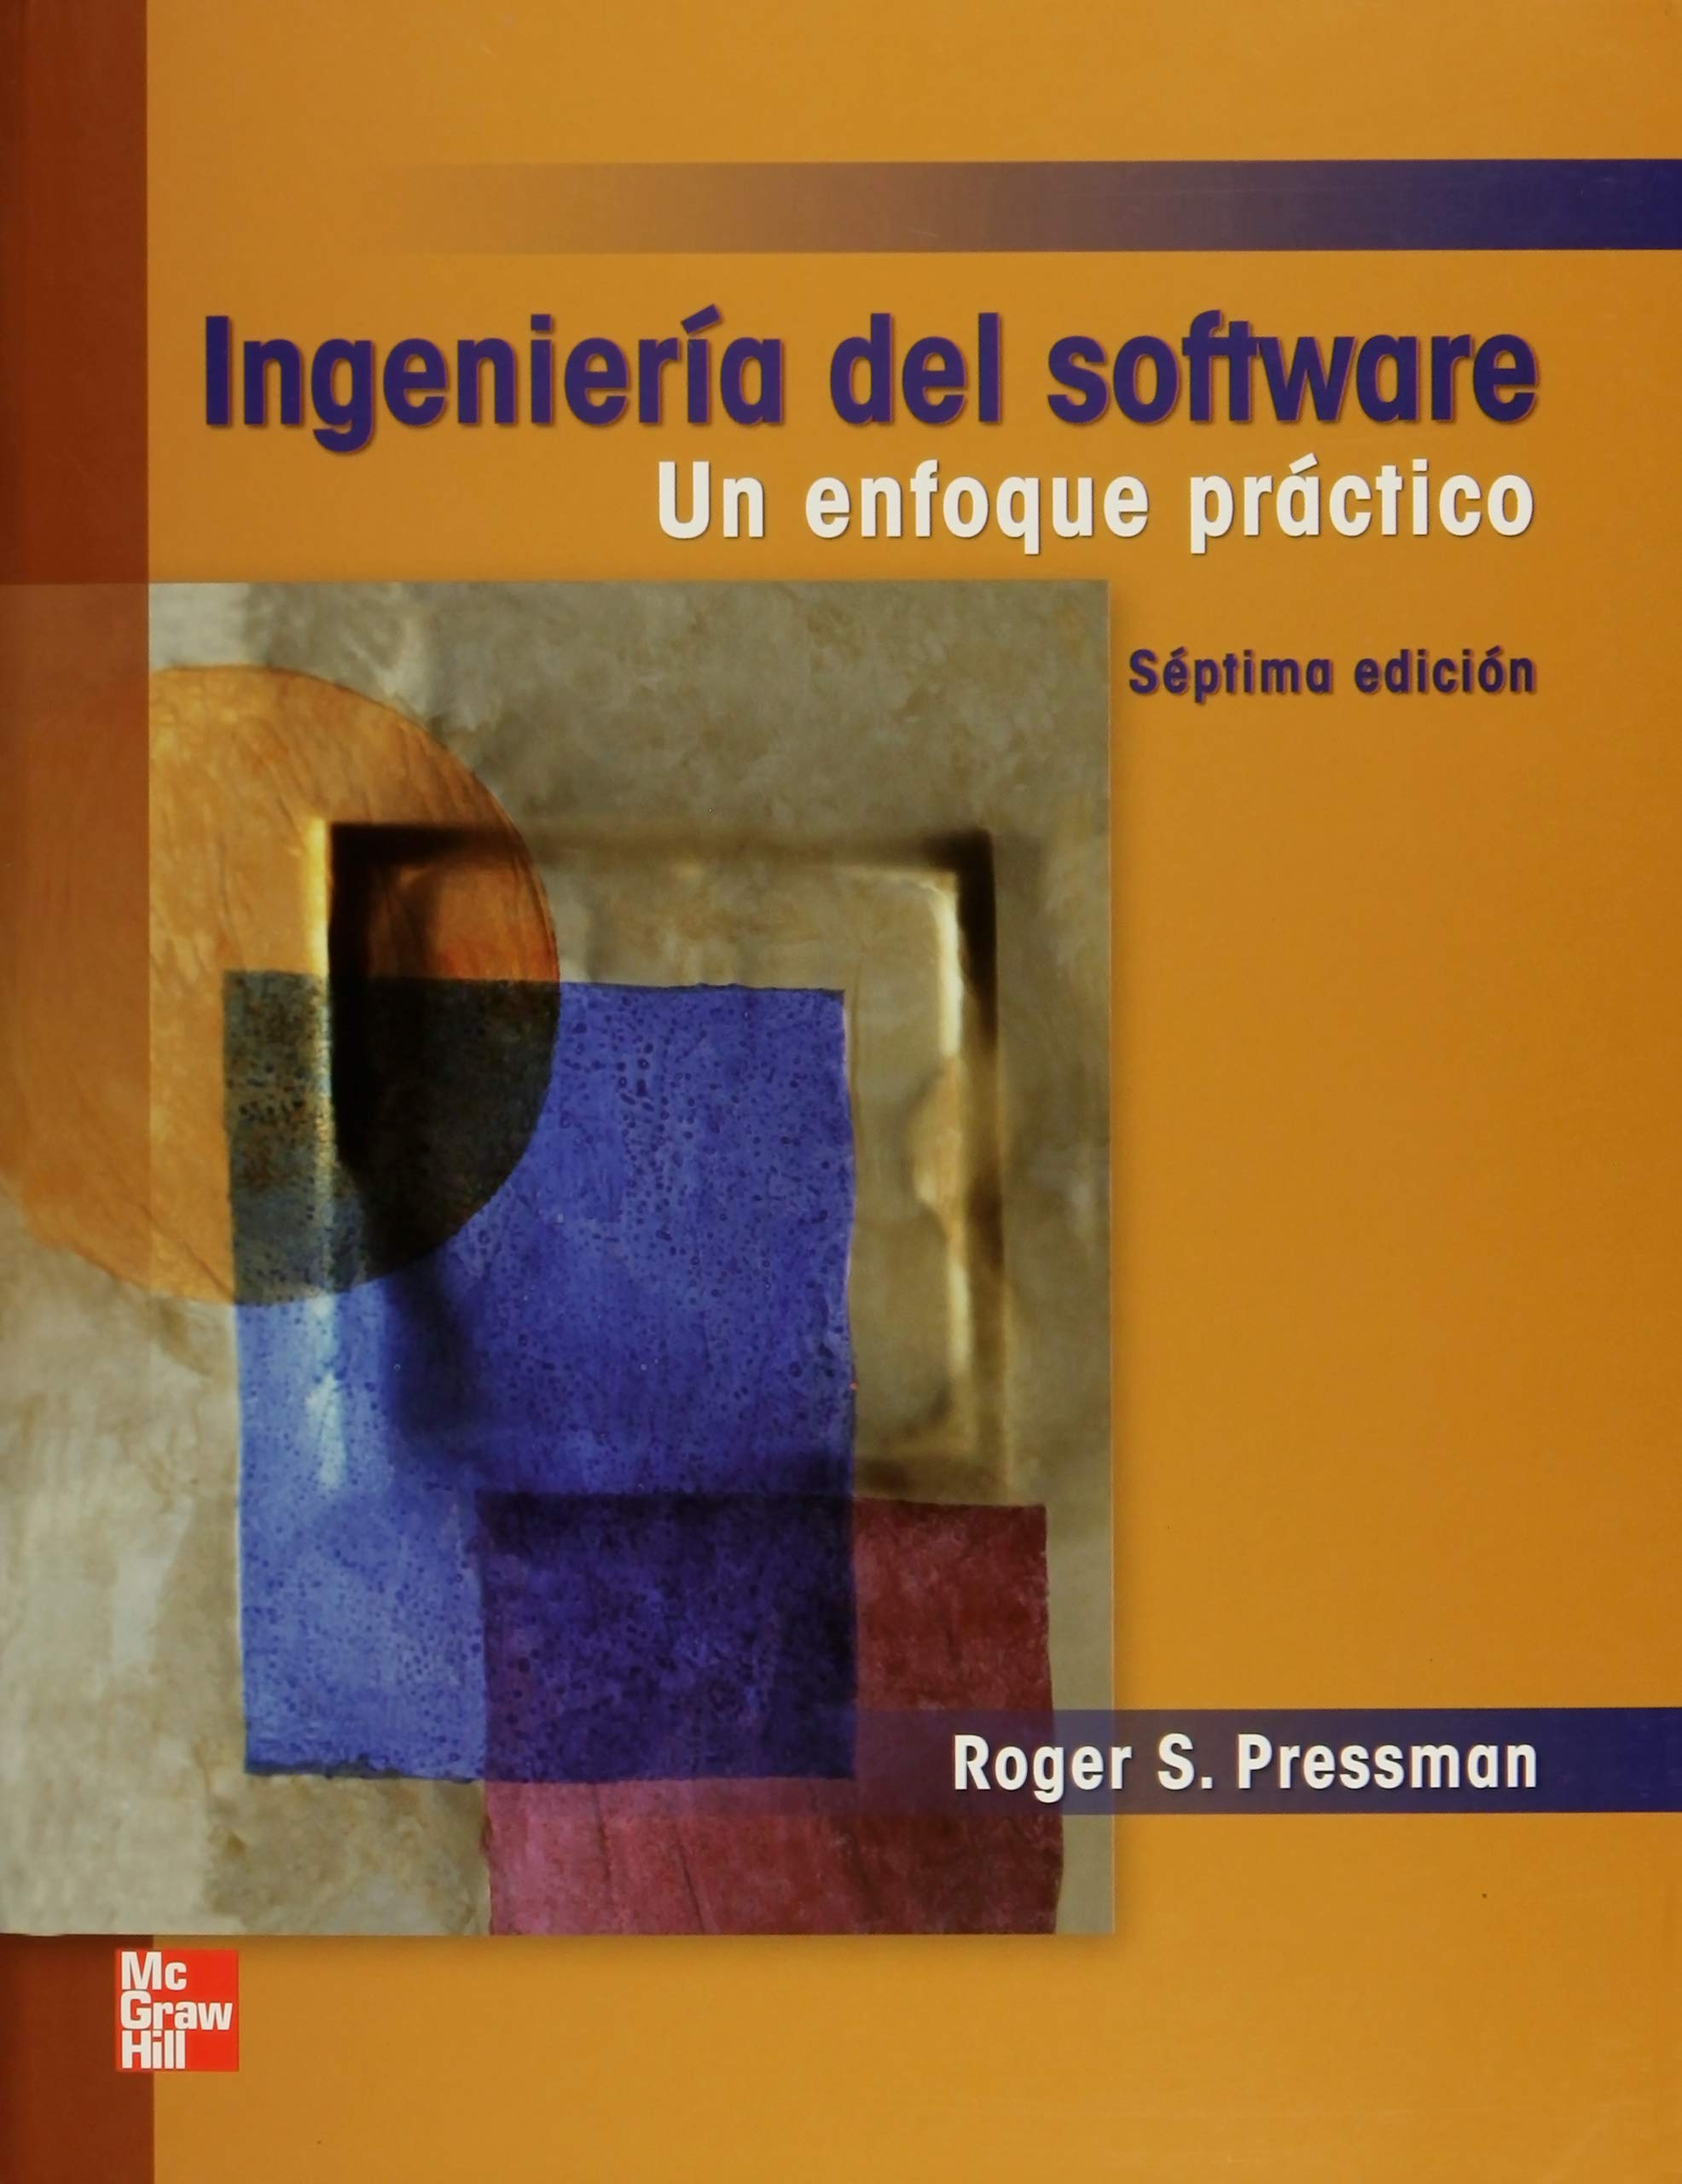 ingenieria de software pressman